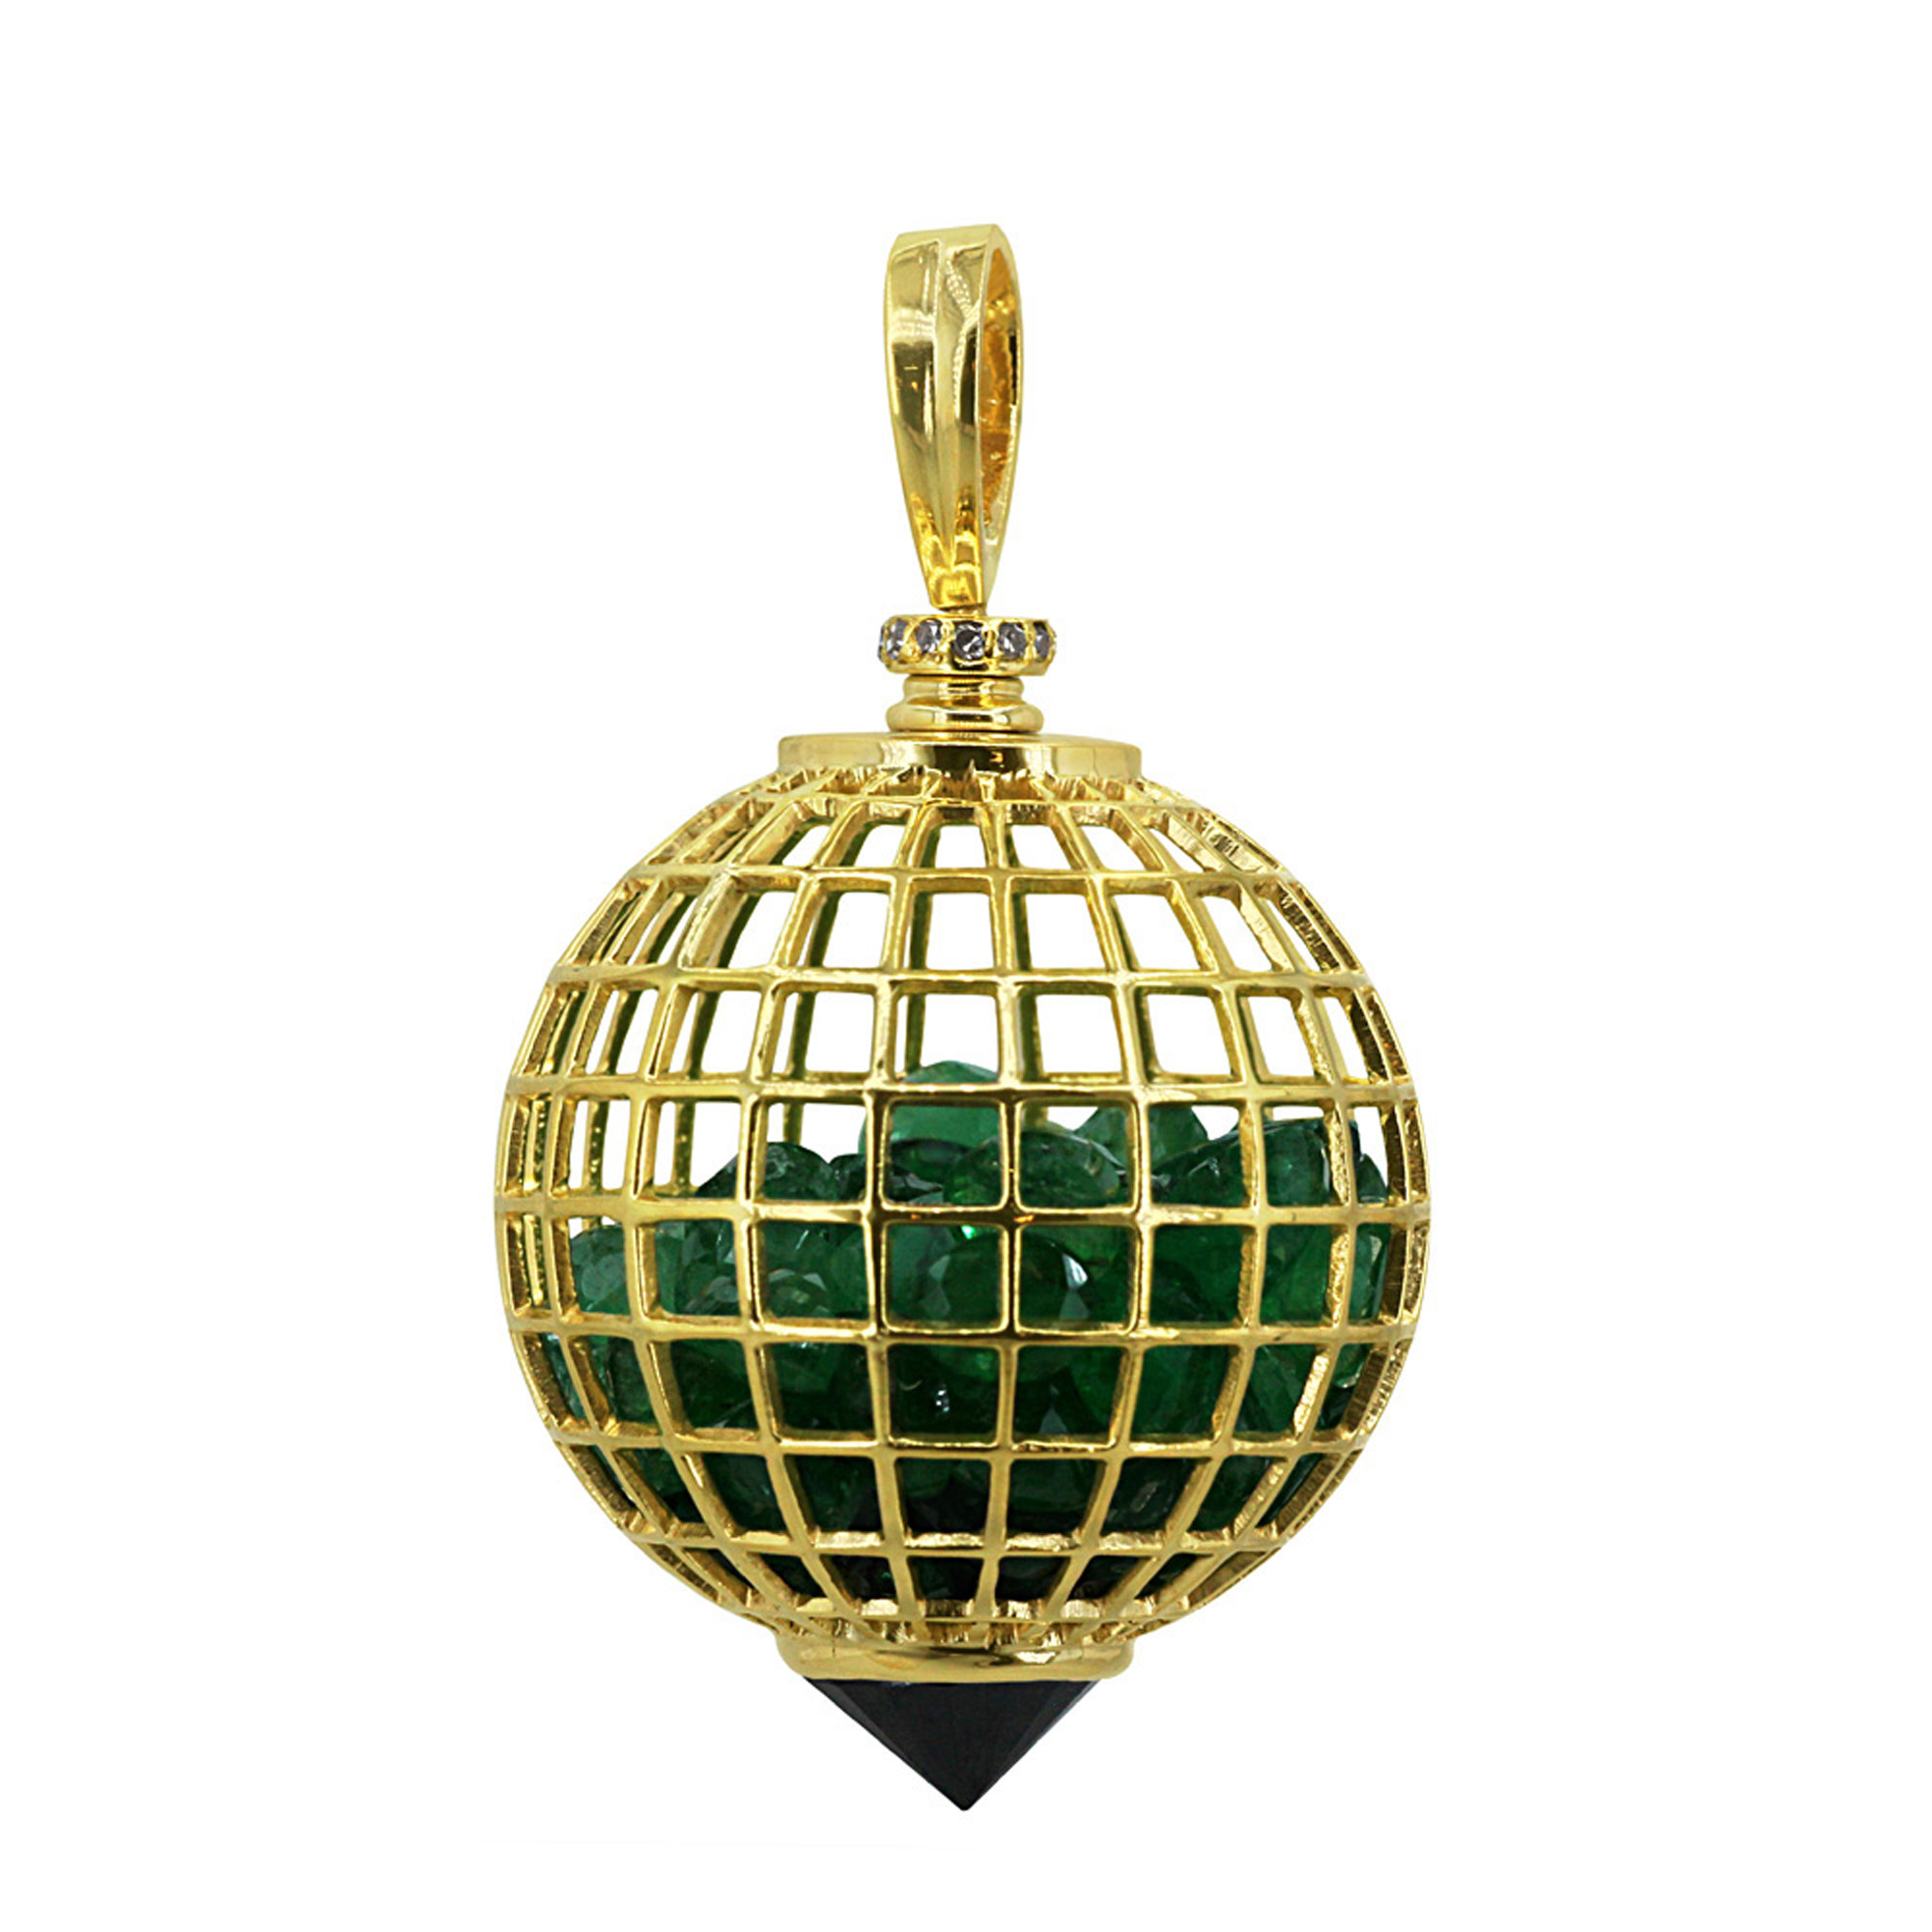 Real diamond 18k solid gold emerald cage shaker pendant with spinel